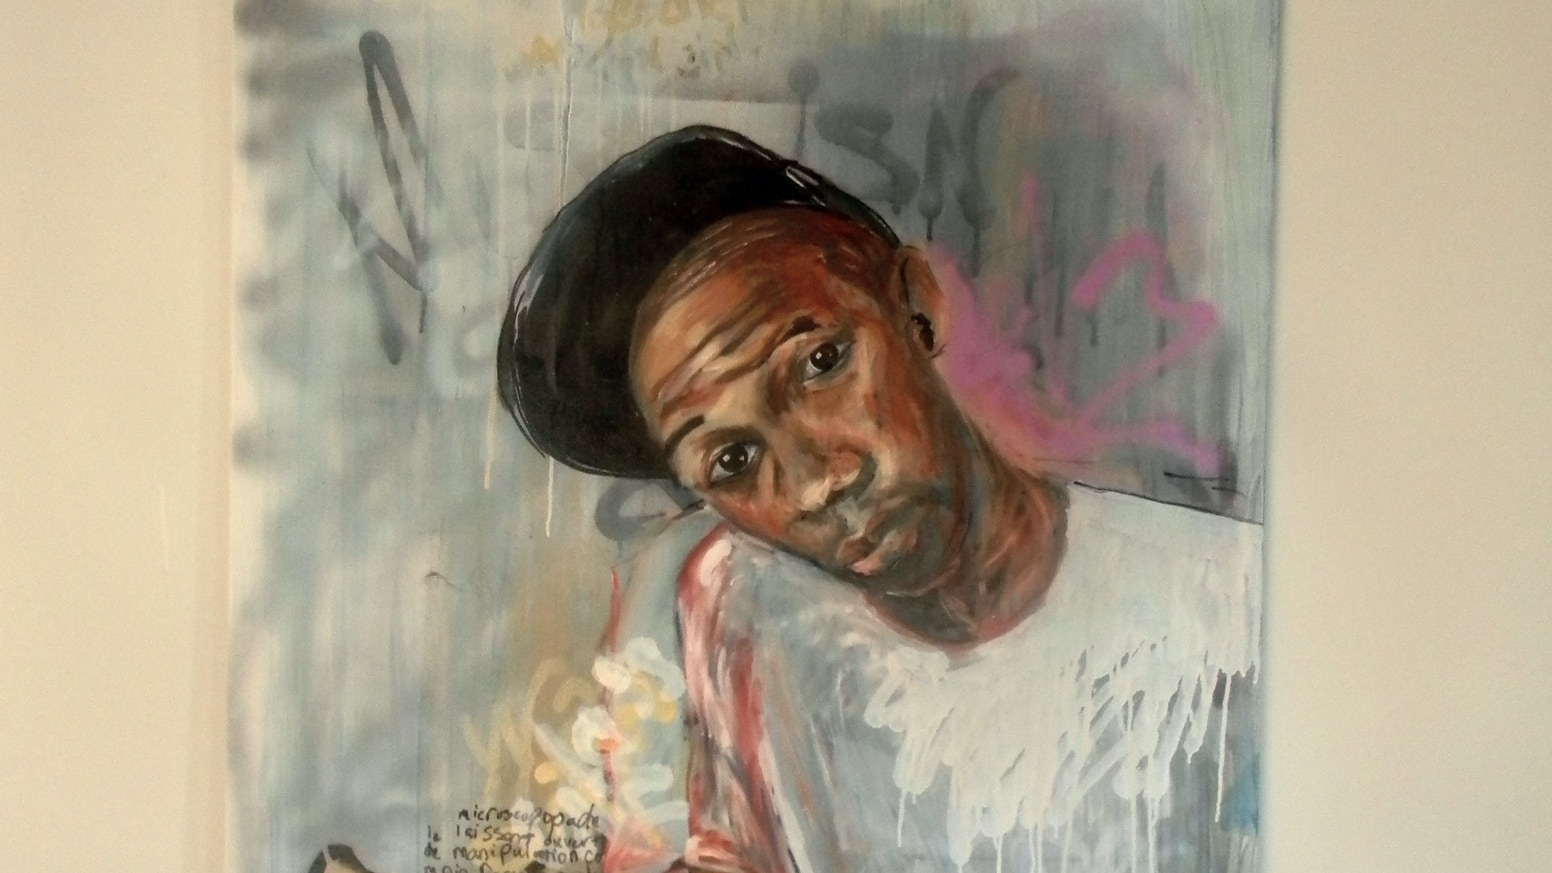 Produce large urban graffiti style portrait paintings on canvas using the mediums of oil ink and spray paint